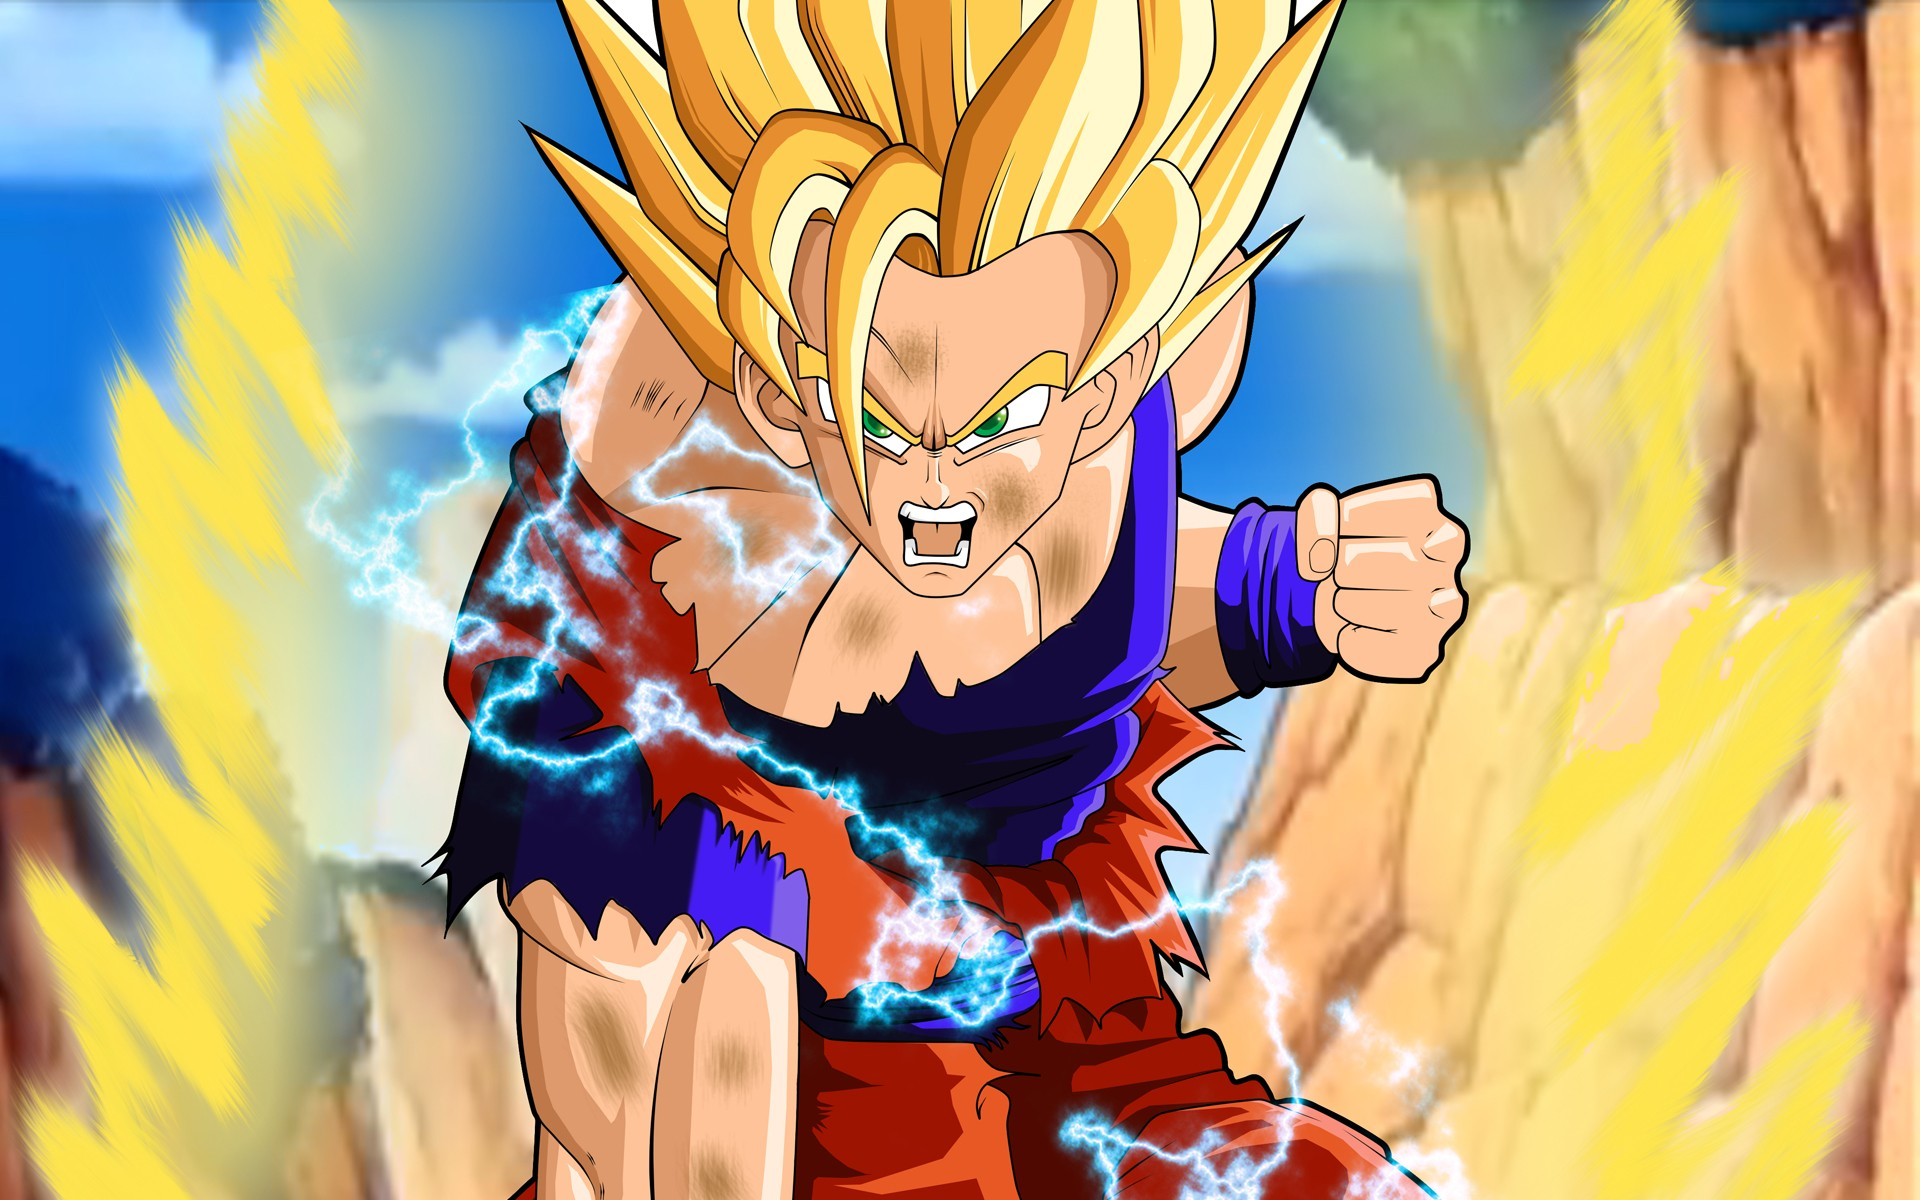 Son Goku Anime Dragon Ball Z Dragon Ball Free Wallpaper